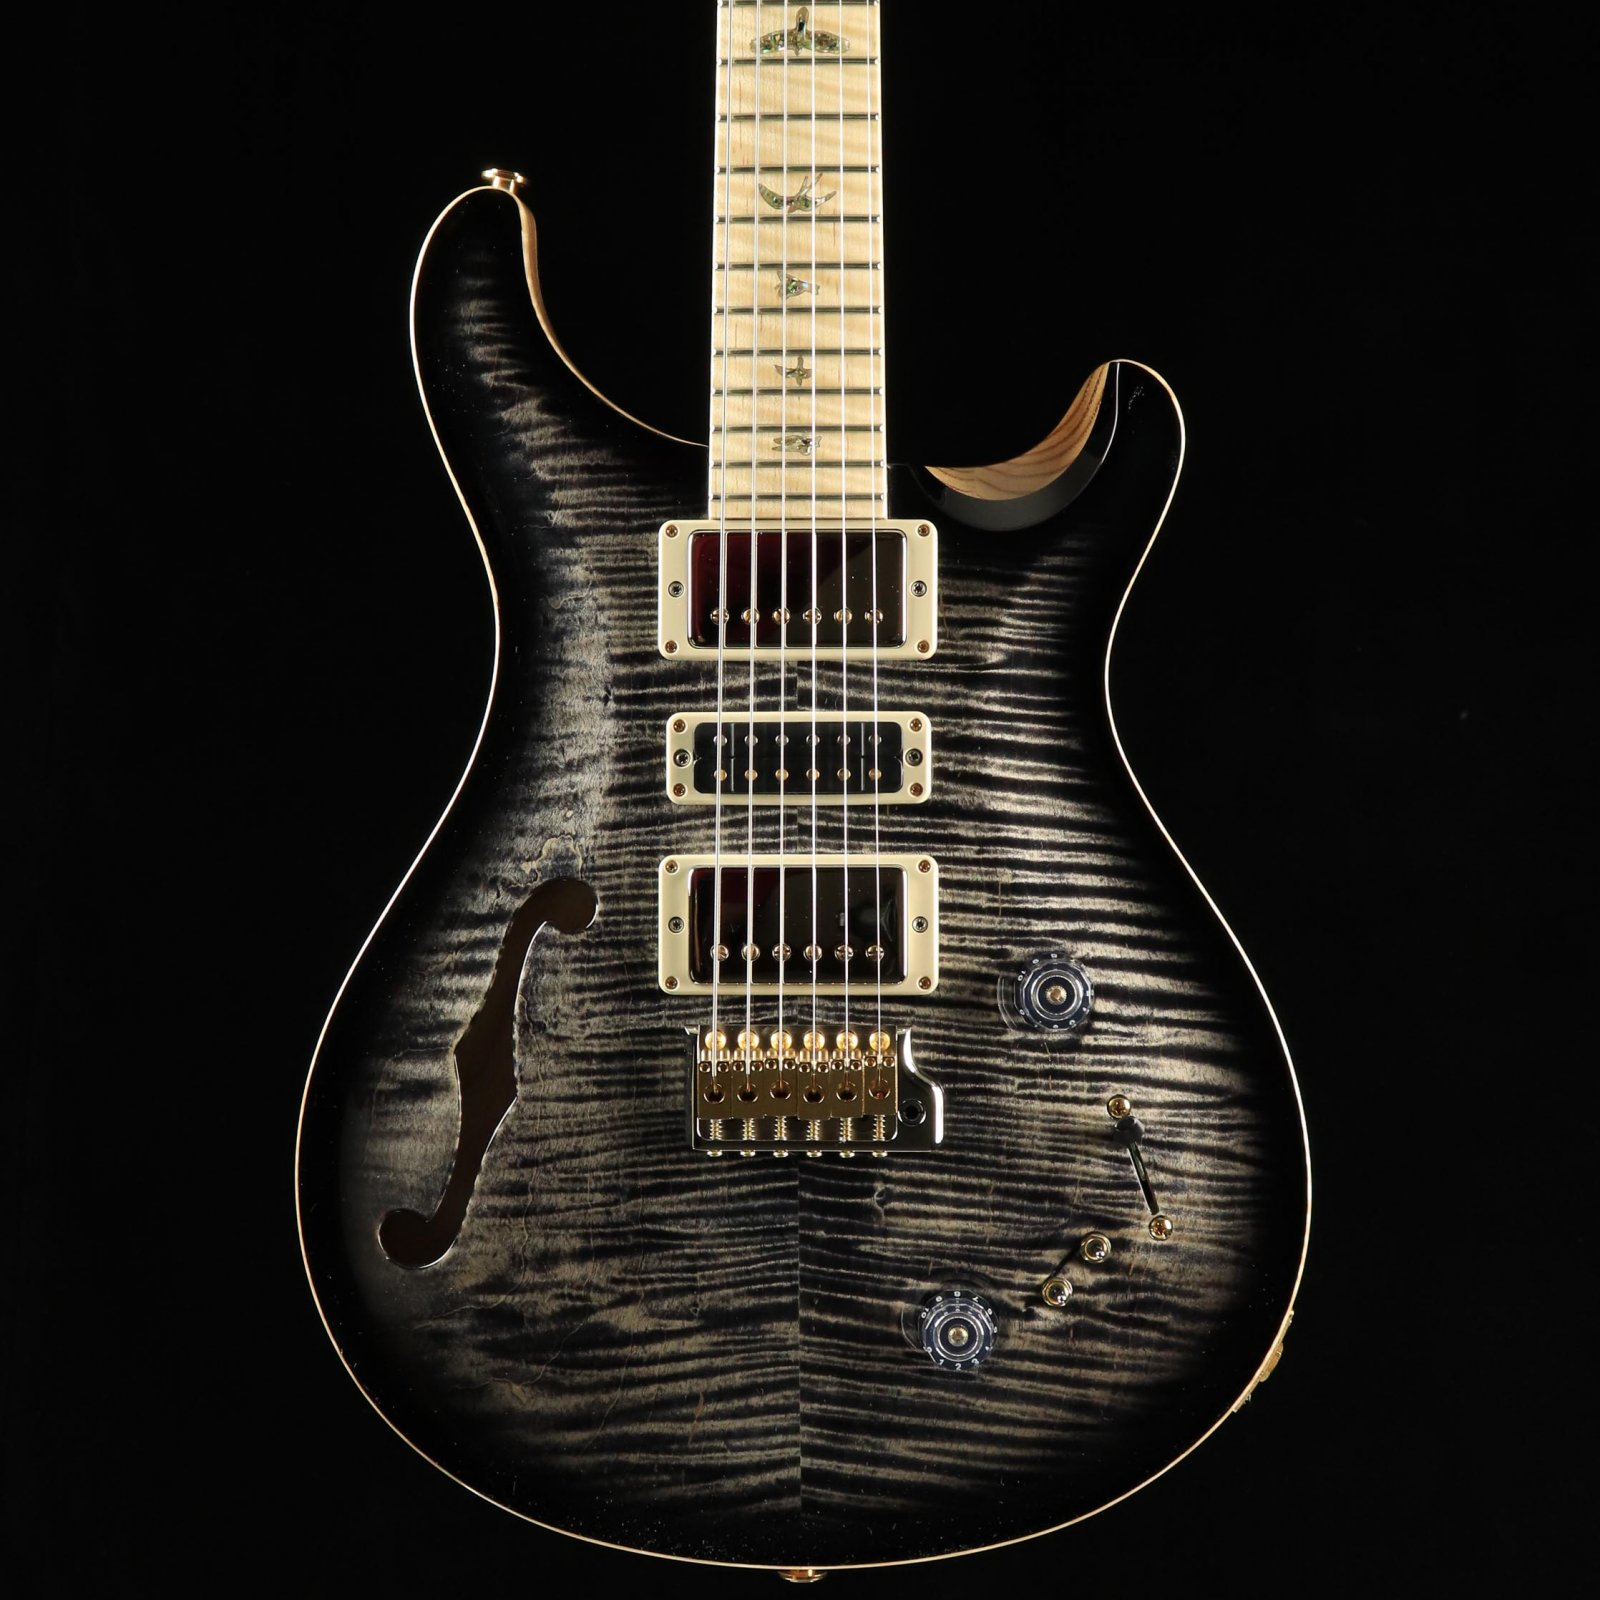 PRS Special Semi-Hollow Wood Library Guitar - Charcoal Burst